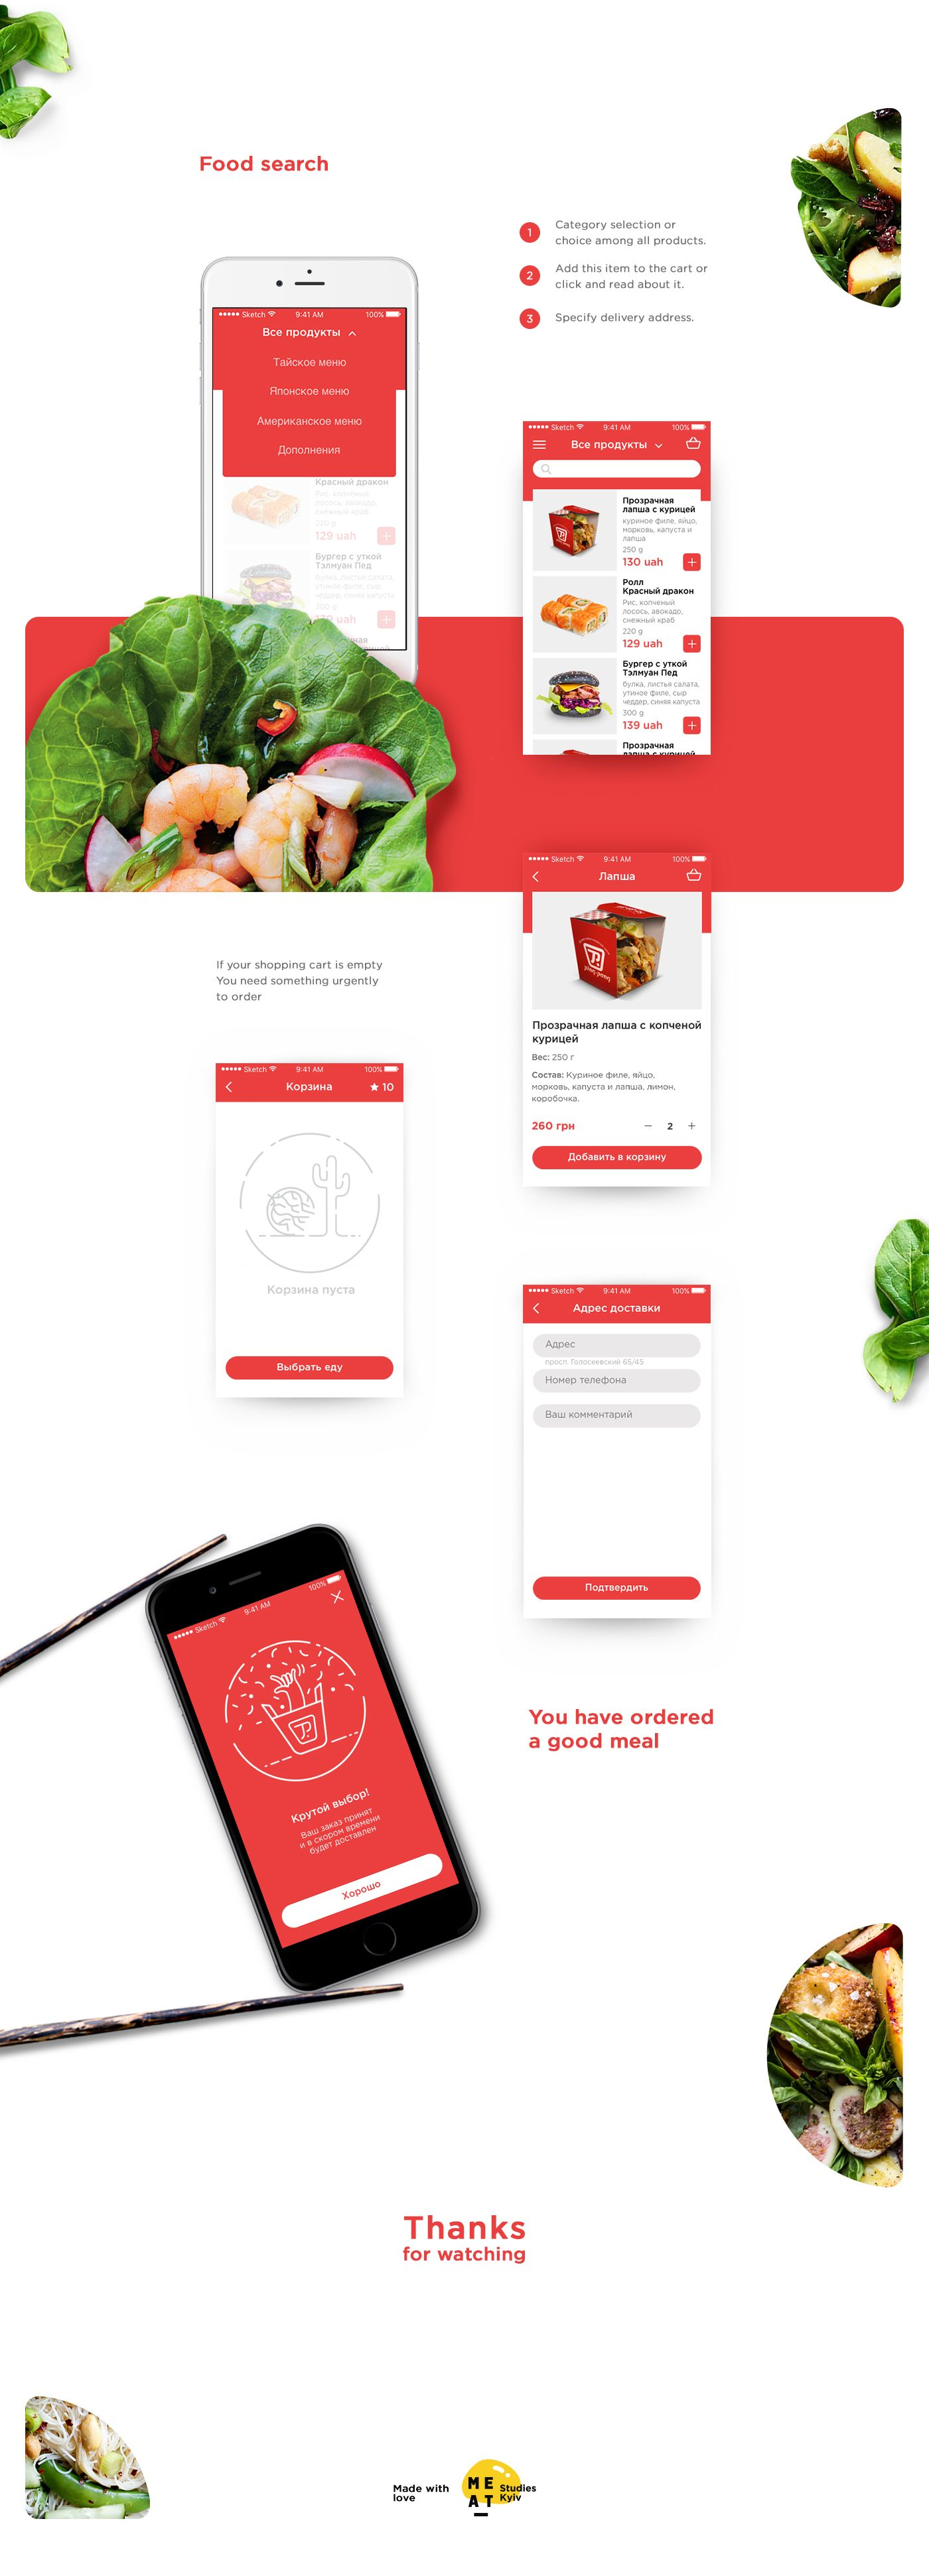 Mobile application Ping-pong for ordering and delivery of food  This